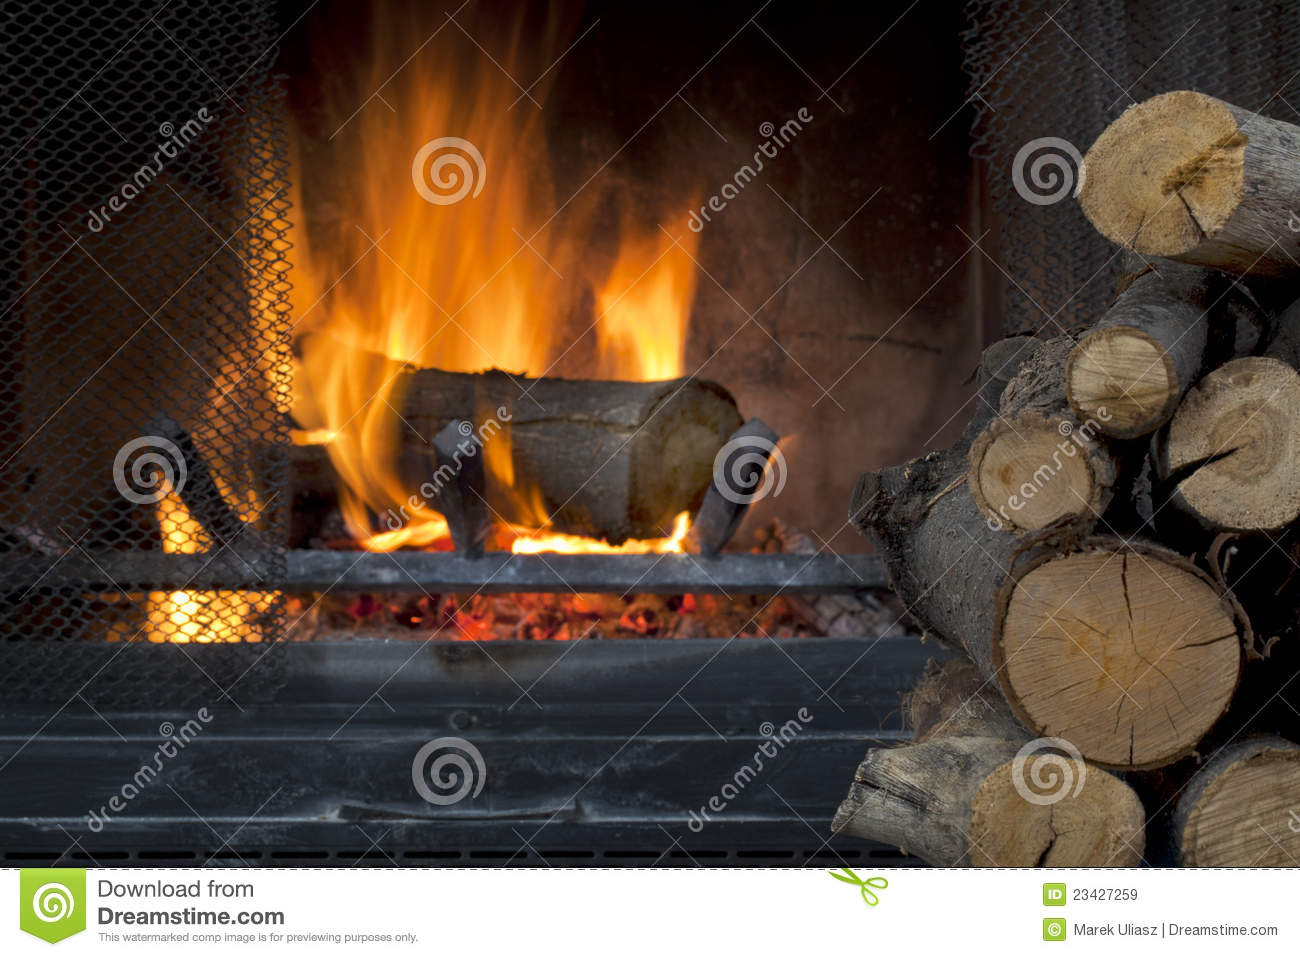 Fireplace and firewood